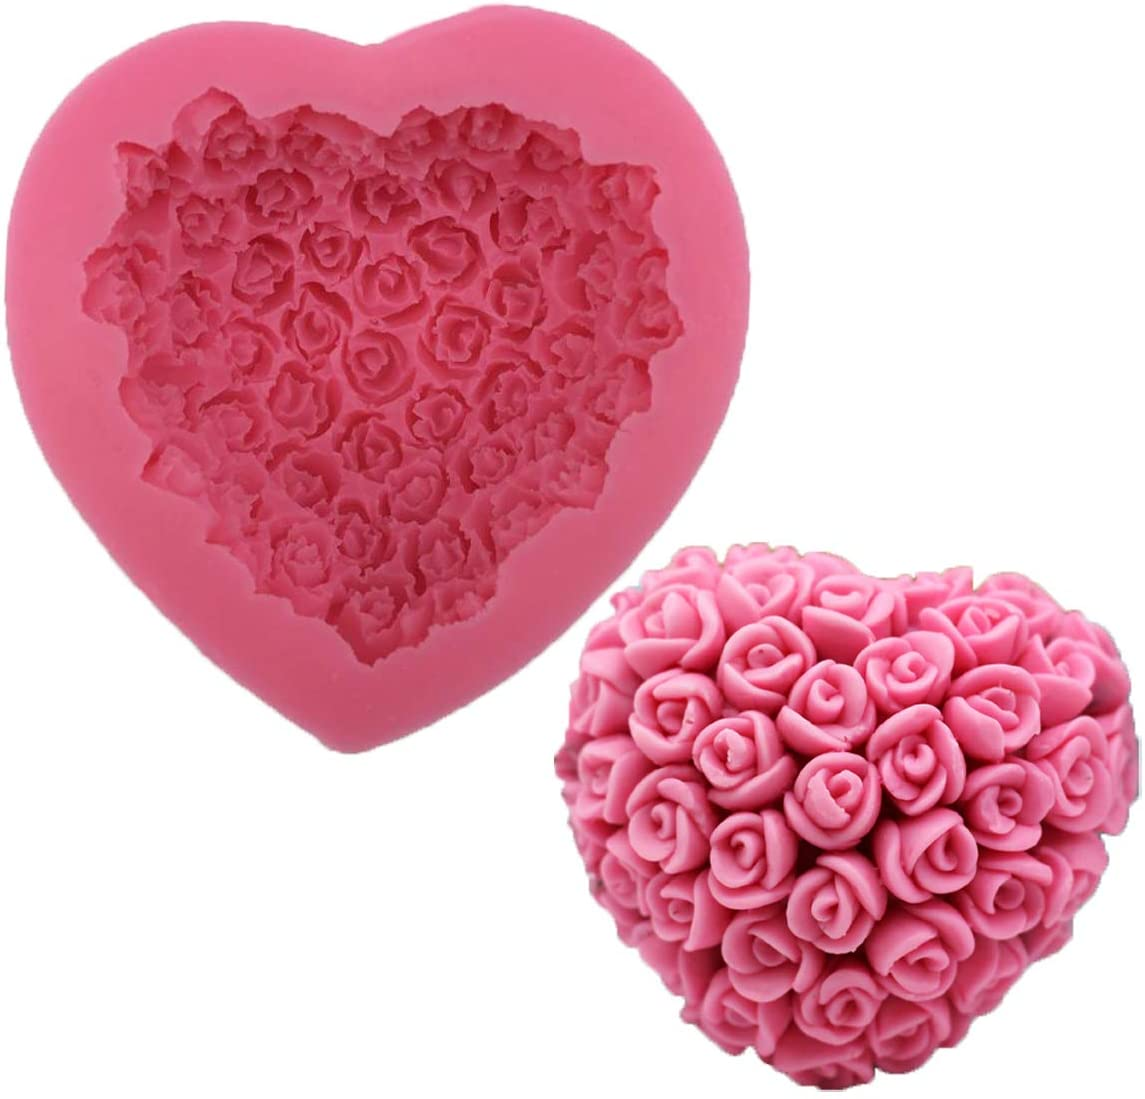 Heart Box with Roses Chocolate Mould Valentine Mould